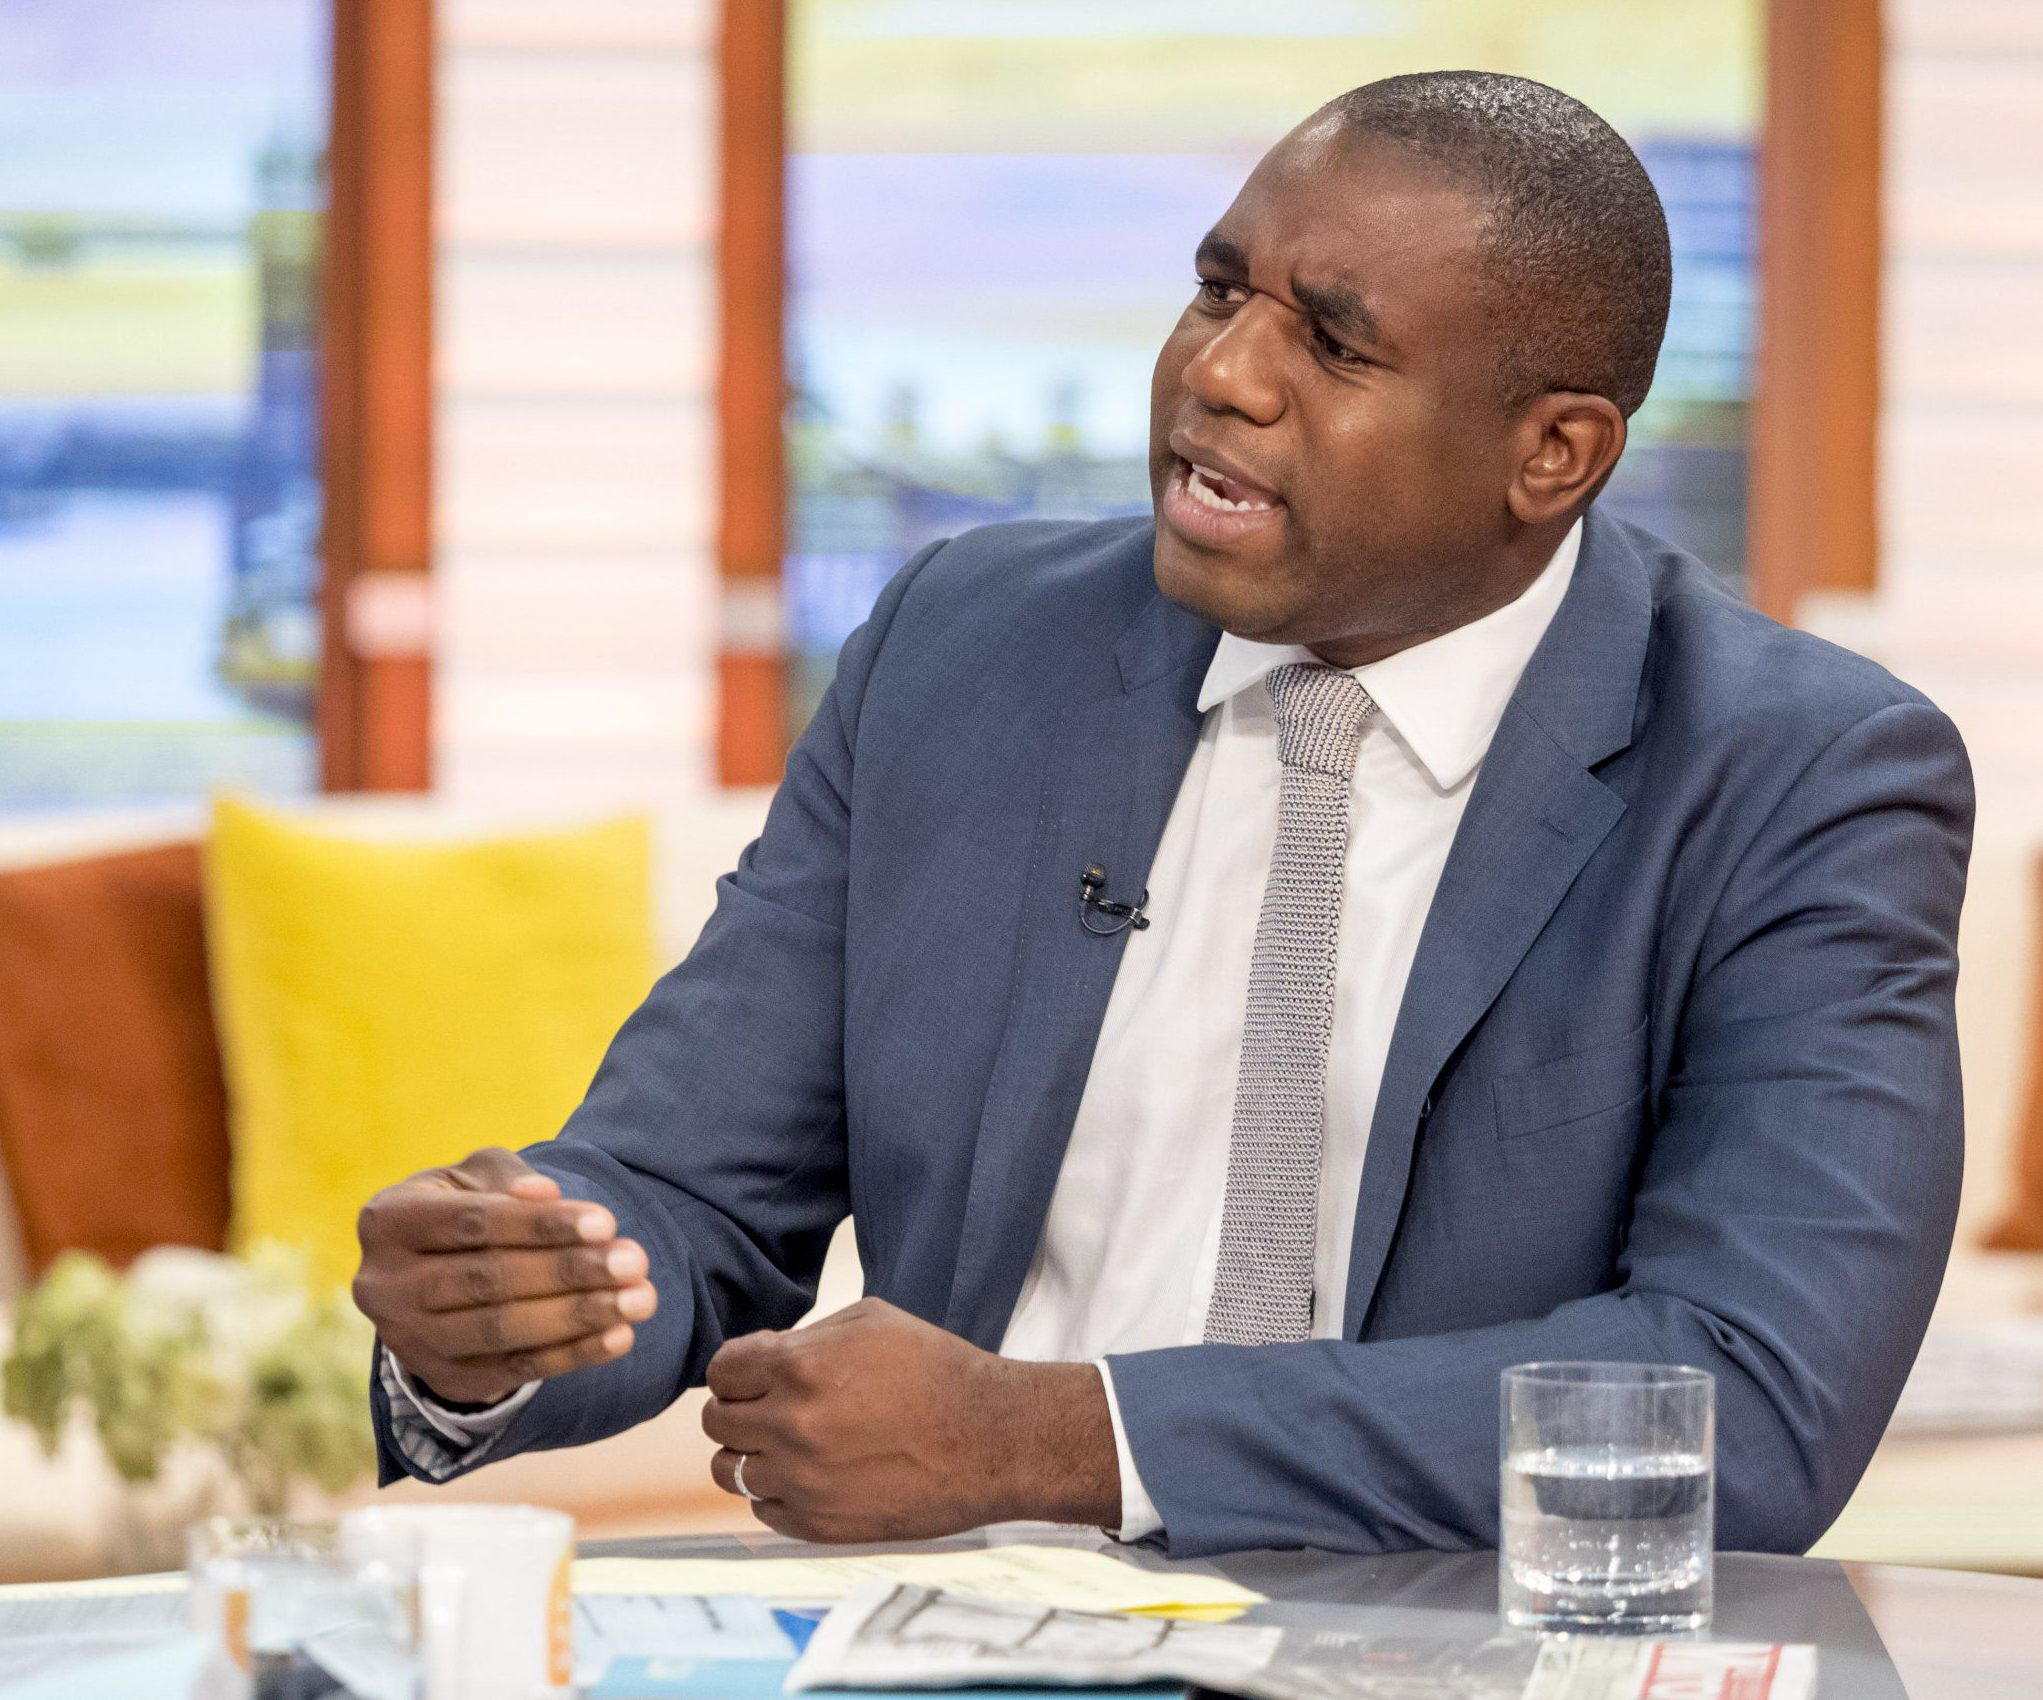 David Lammy says Grenfell Tower residents need closure after losing his friend in fire